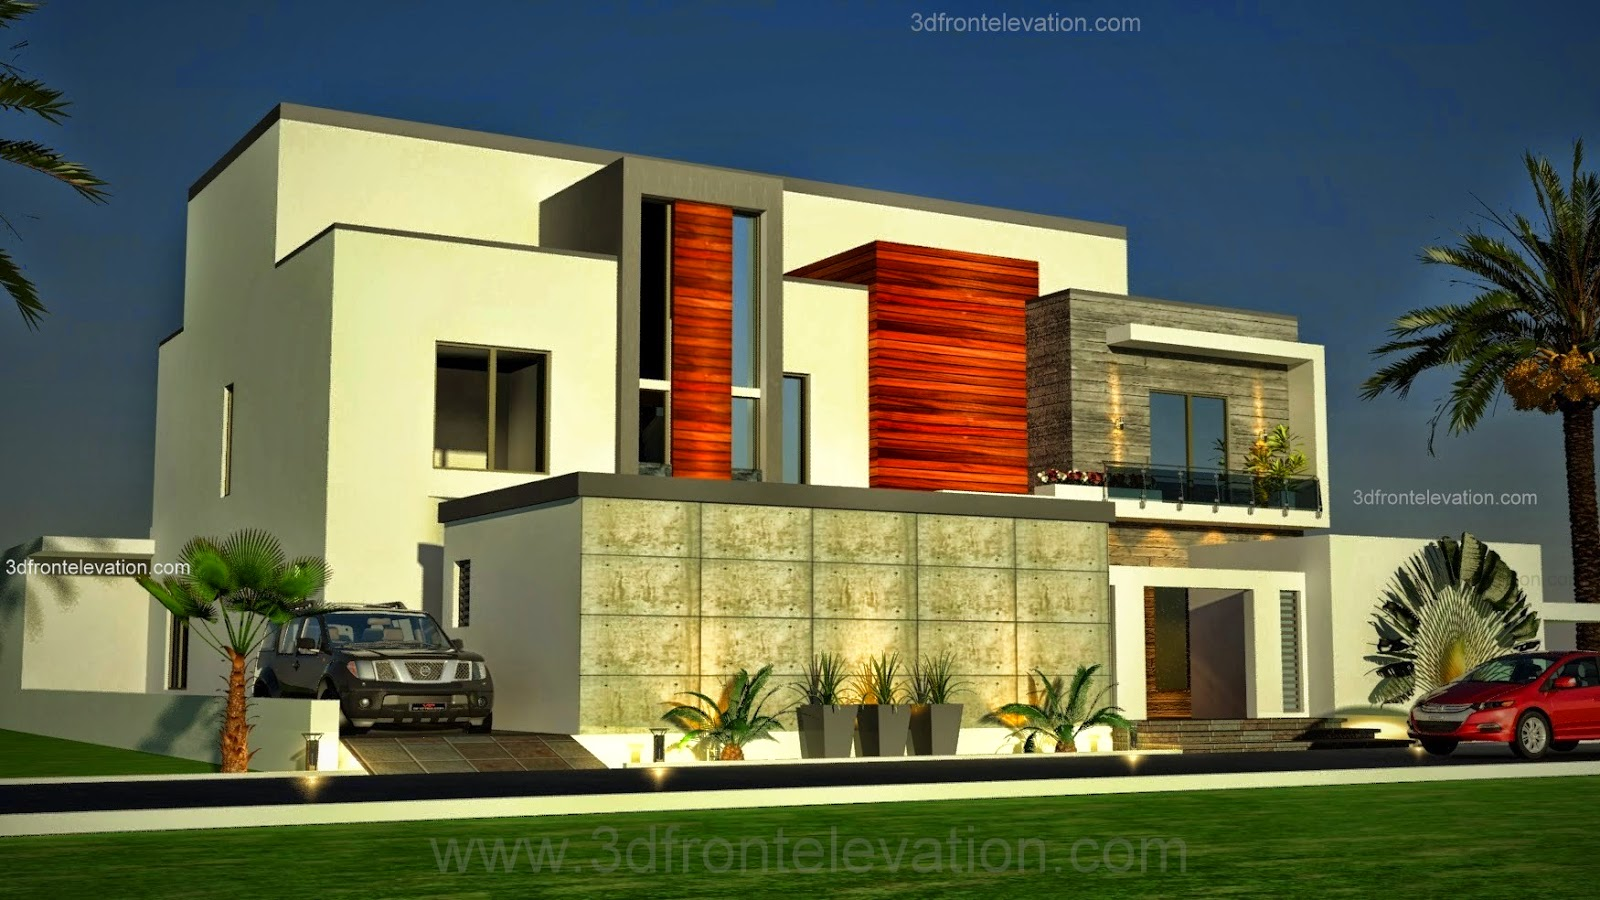 Dubai modern houses modern house for Modern home decor dubai